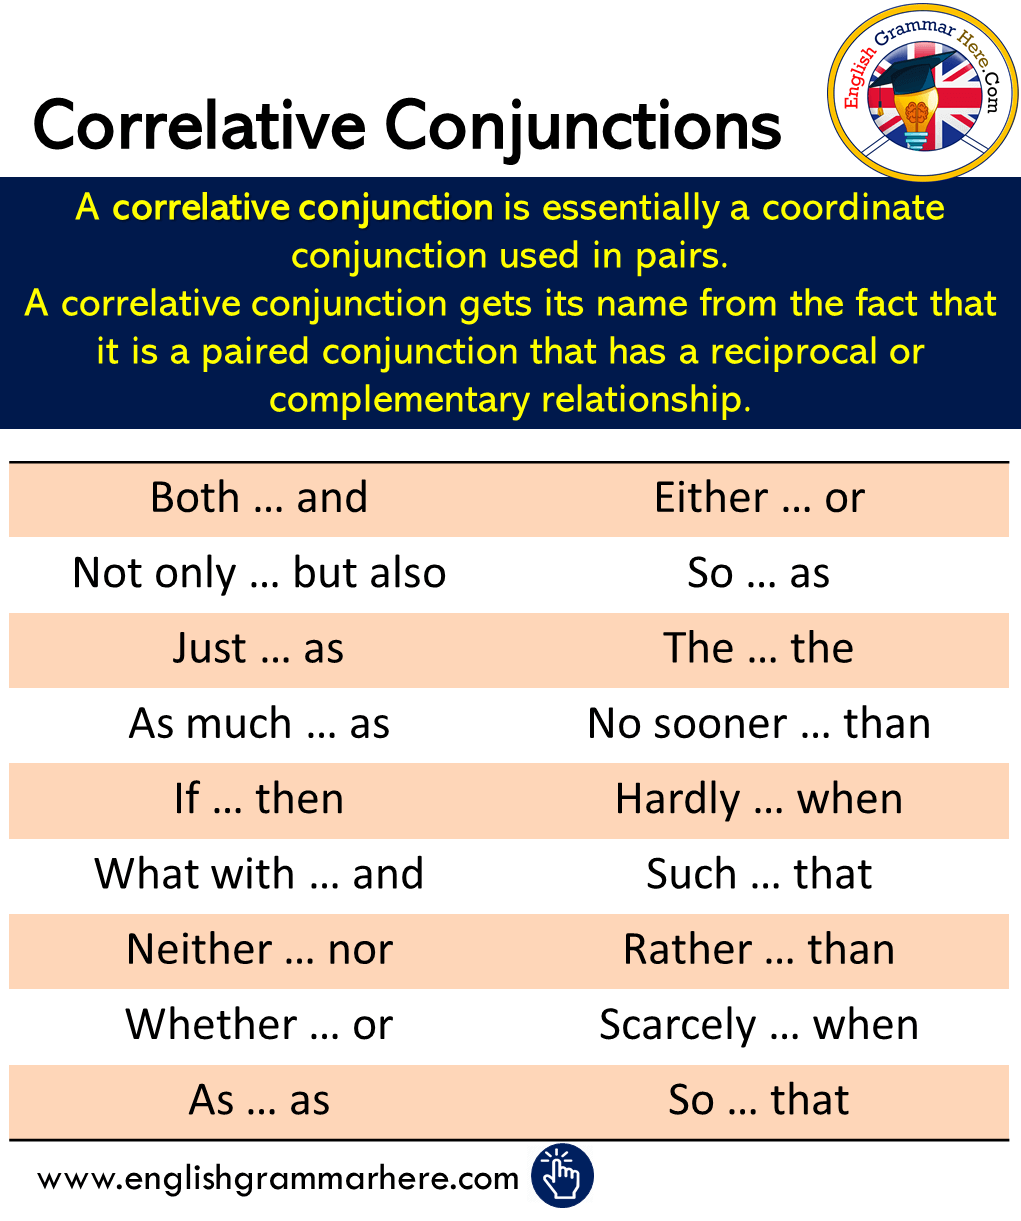 Correlative Conjunctions, Definitions and Examples